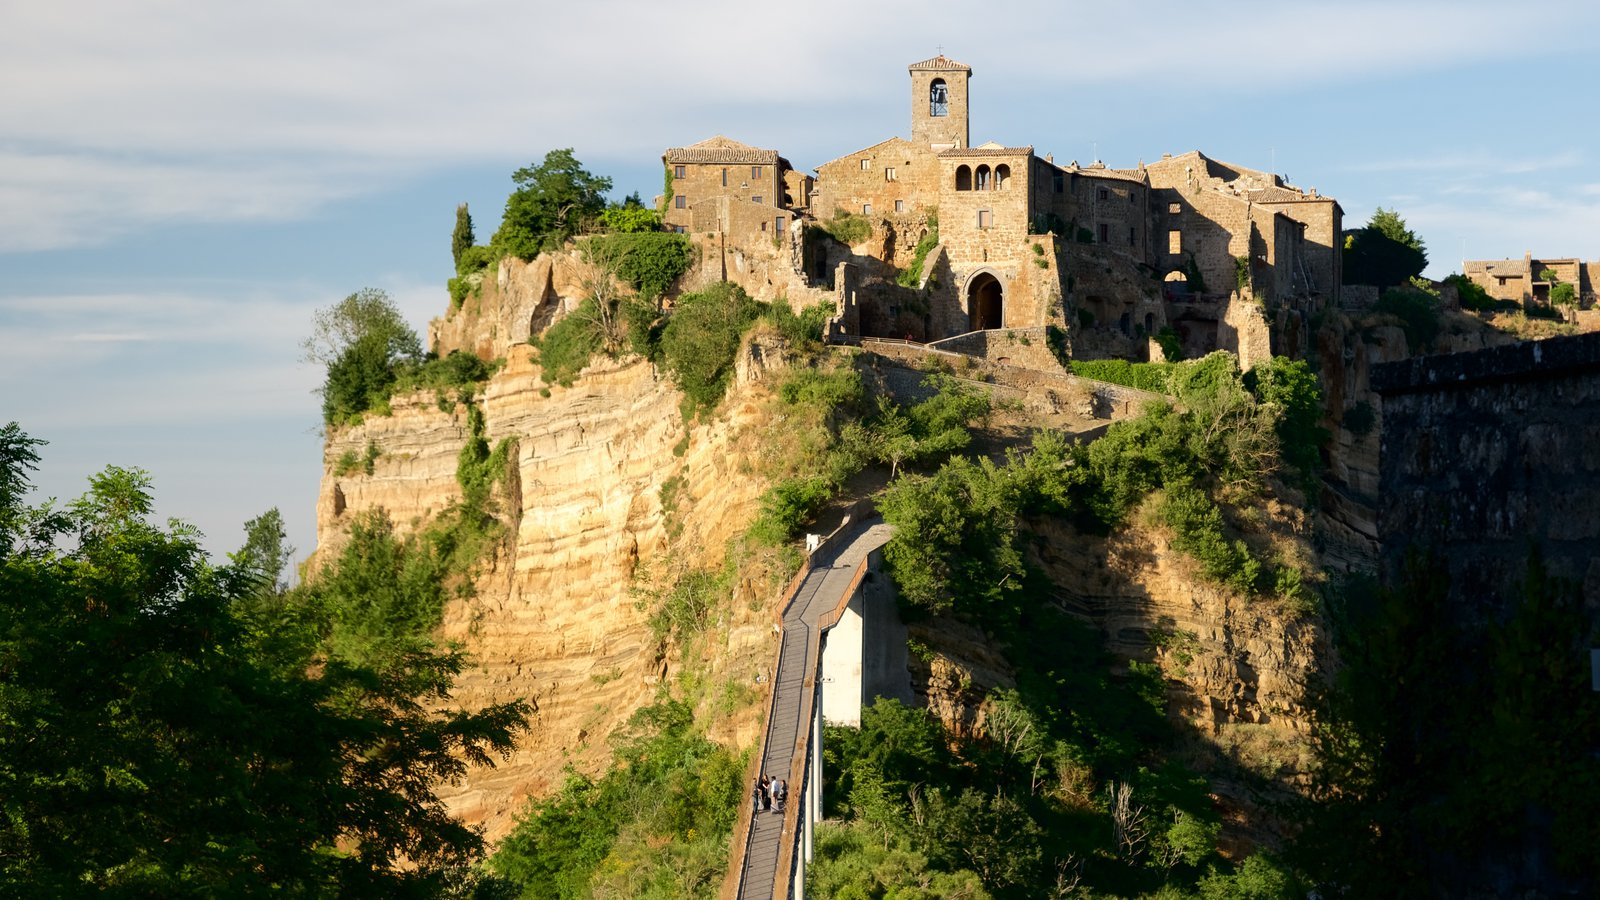 Historical Pictures: View Images of Bagnoregio